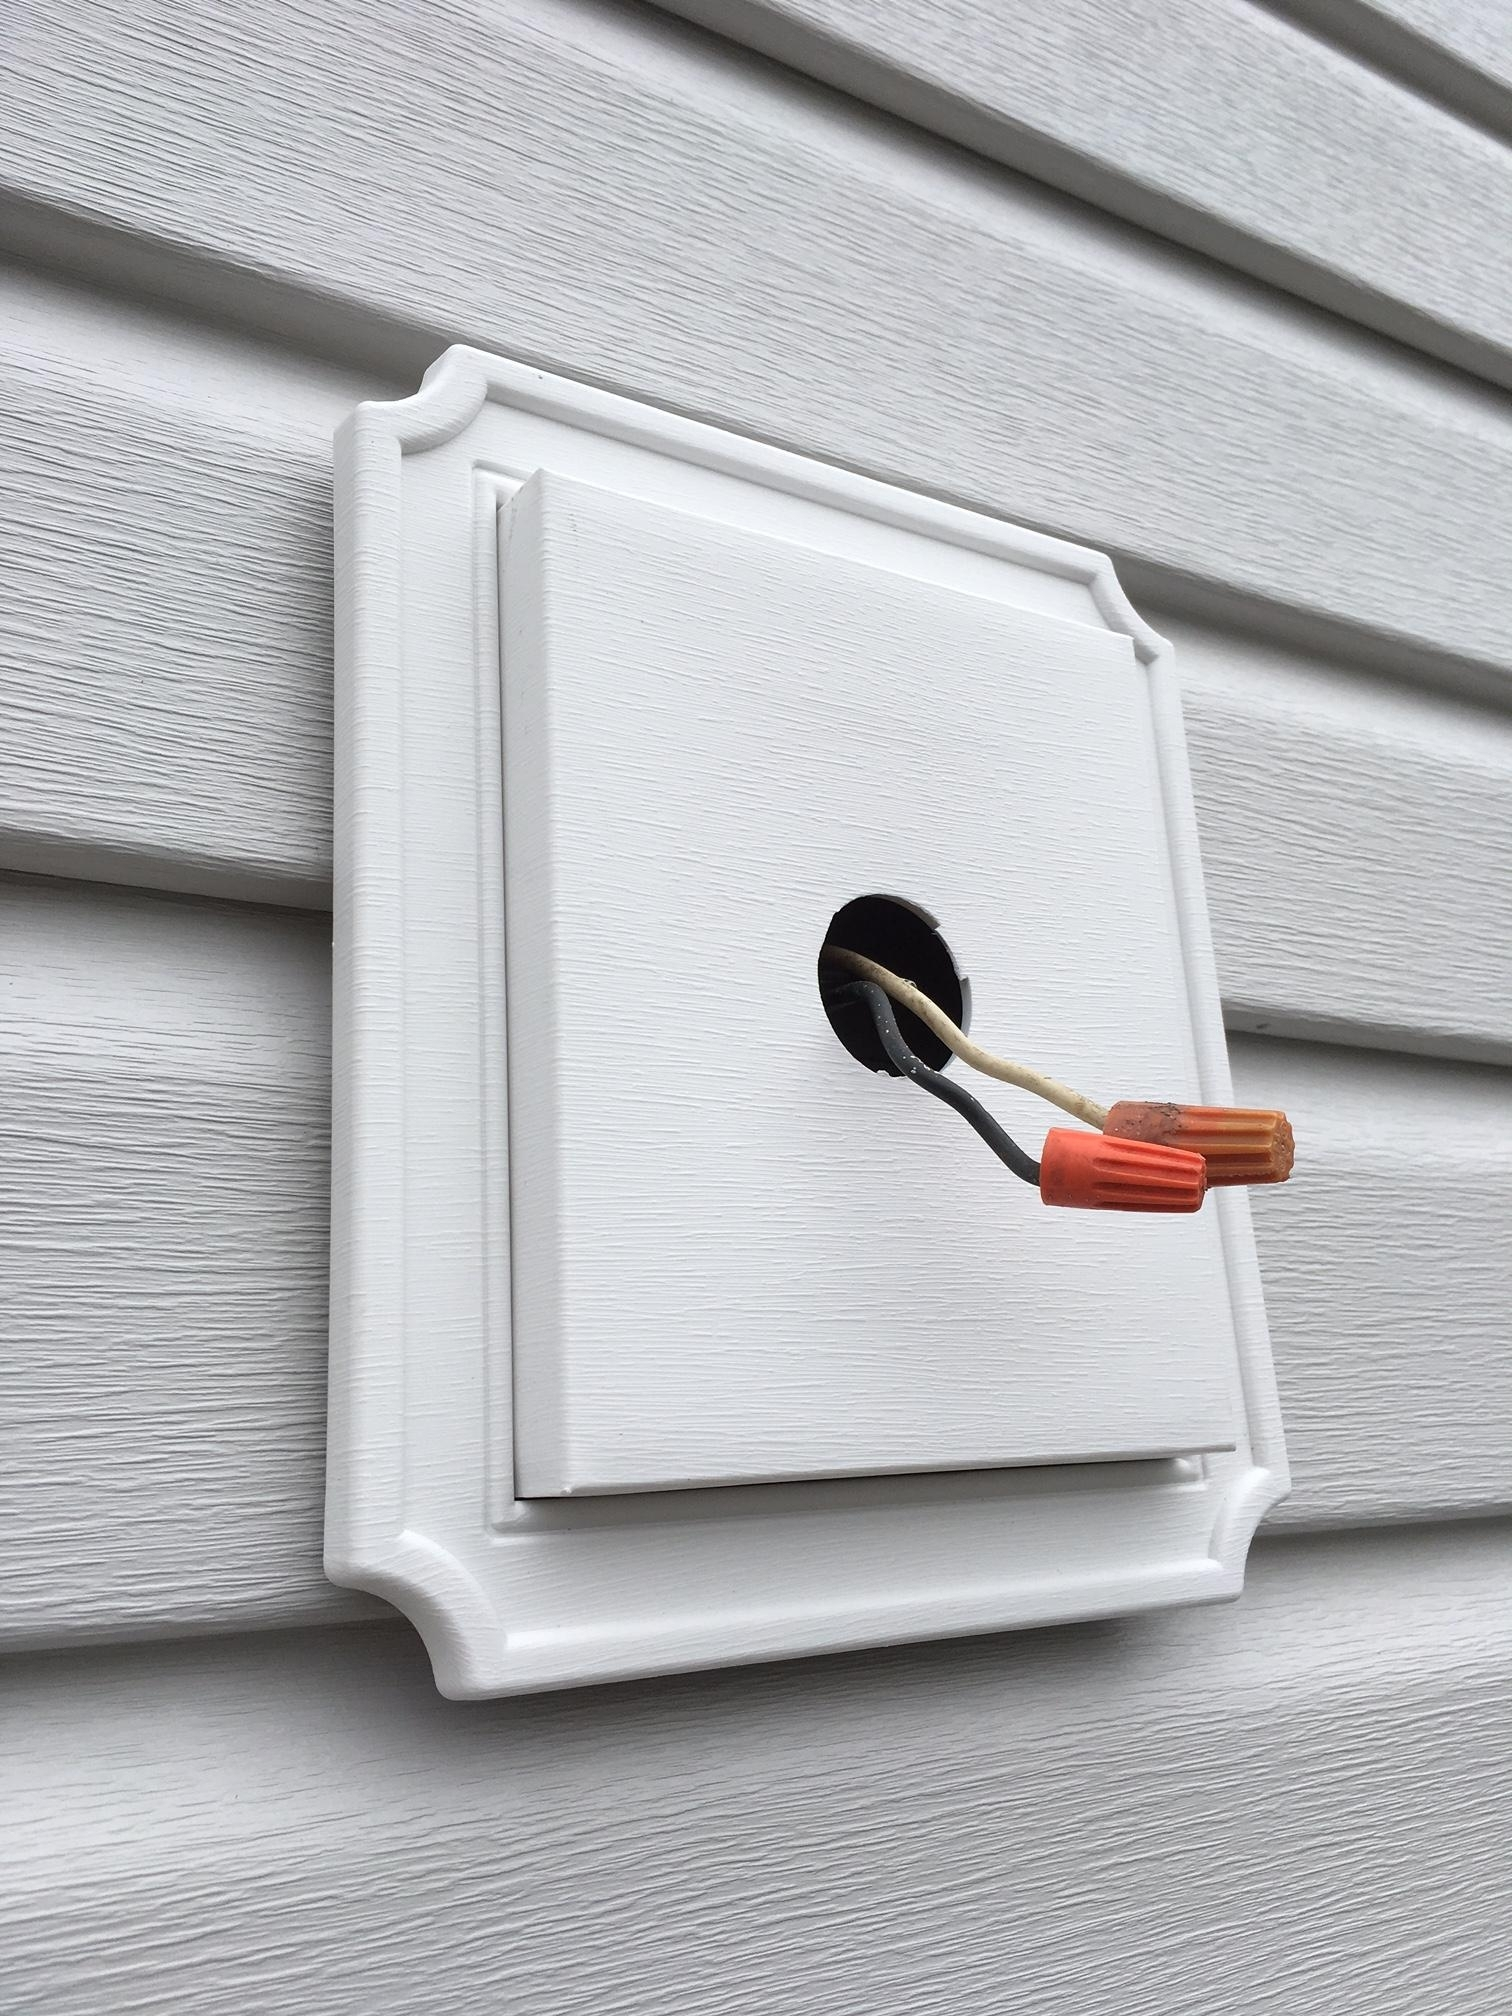 15 Photo Of Hanging Outdoor Lights On Vinyl Siding